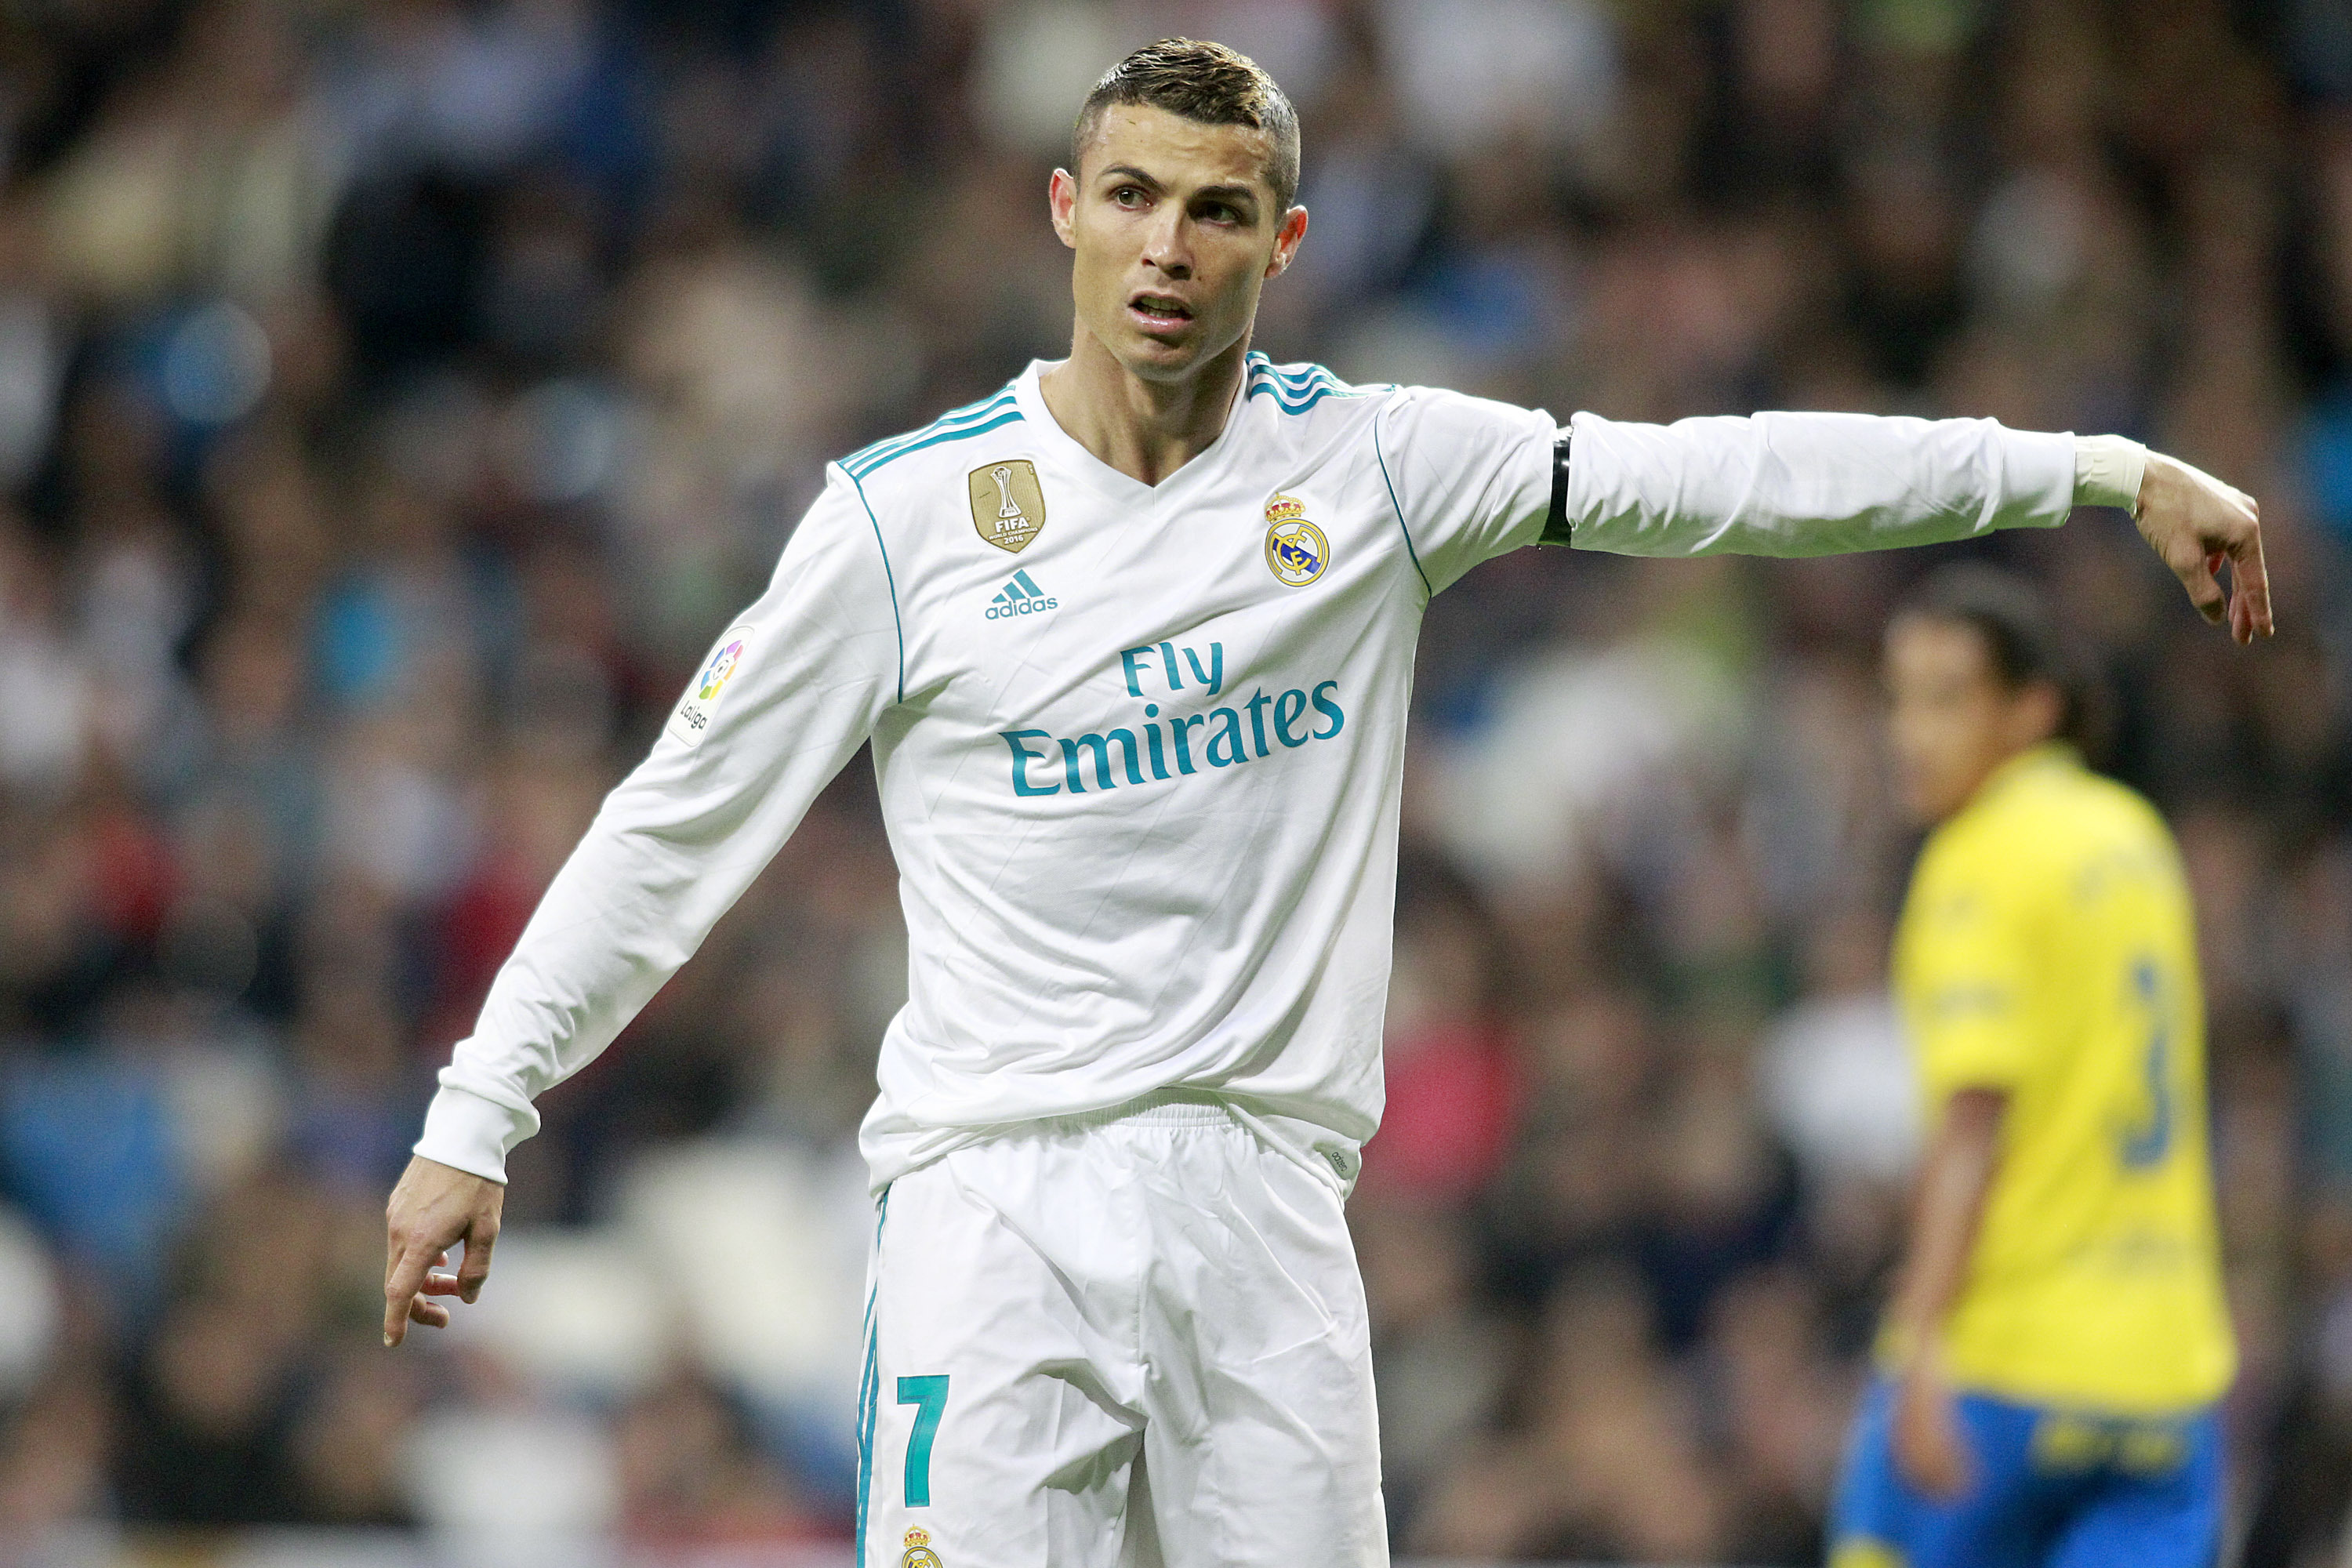 Is Cristiano Ronaldo leaving Real Madrid next year?